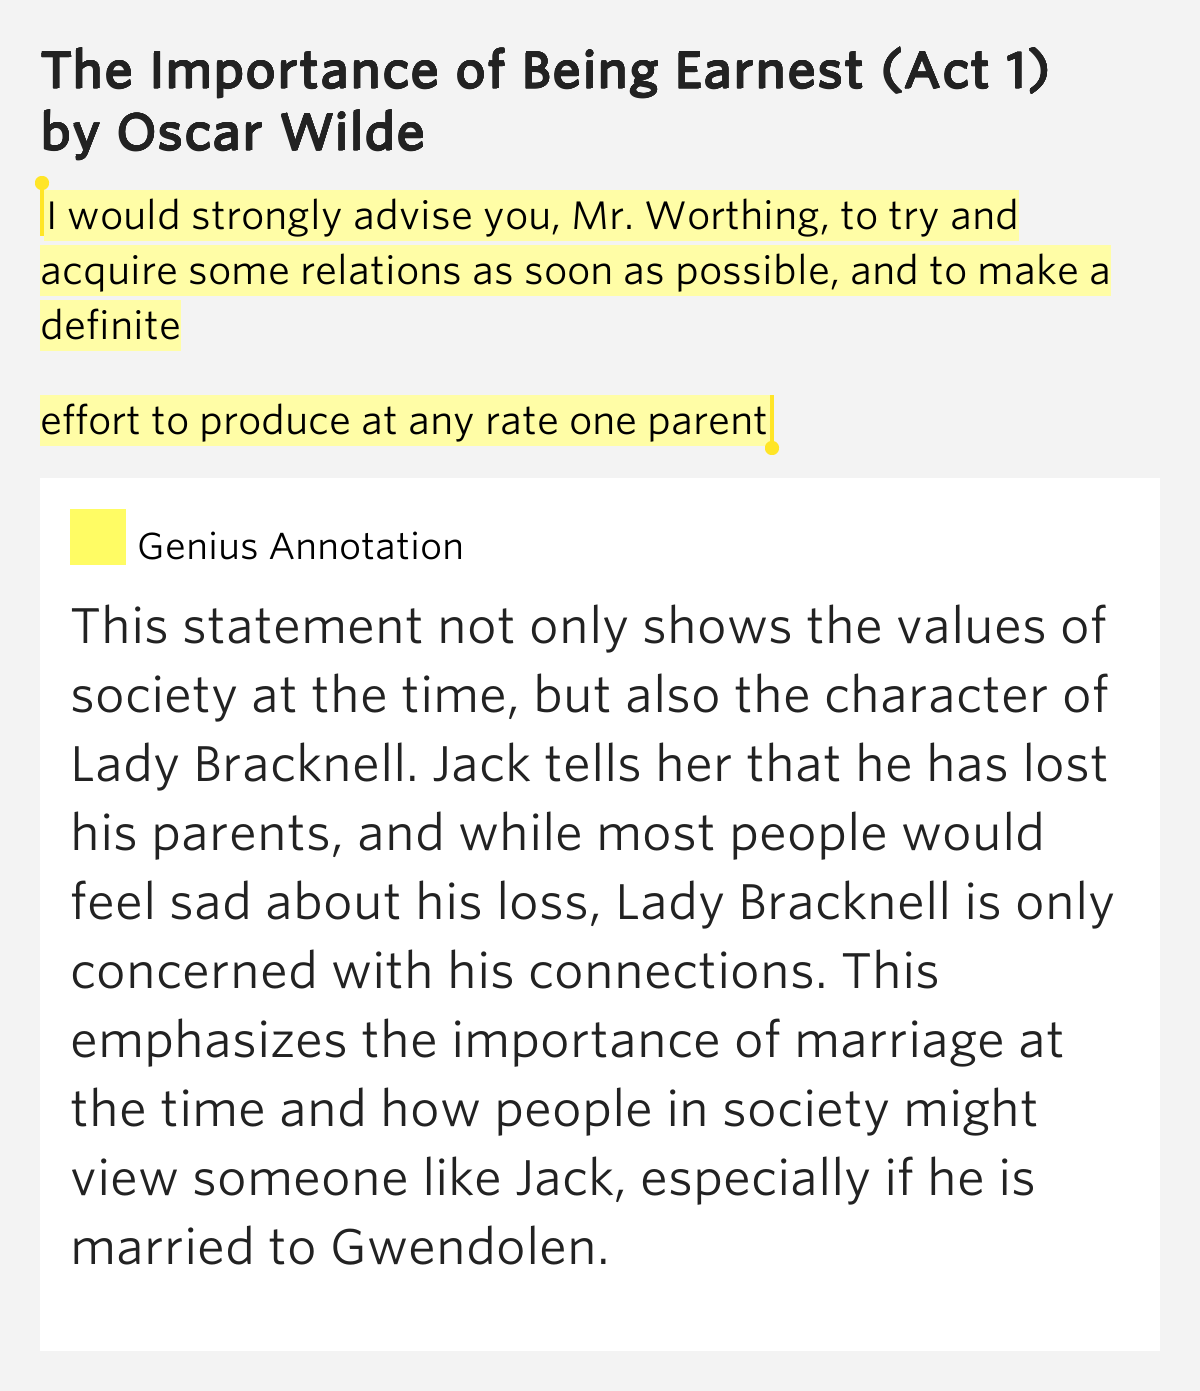 the importance of being earnest psuedo relations Appearance was everything, and style was much more important than substance  so, while a person could lead a secret life, carry on affairs within marriage or.